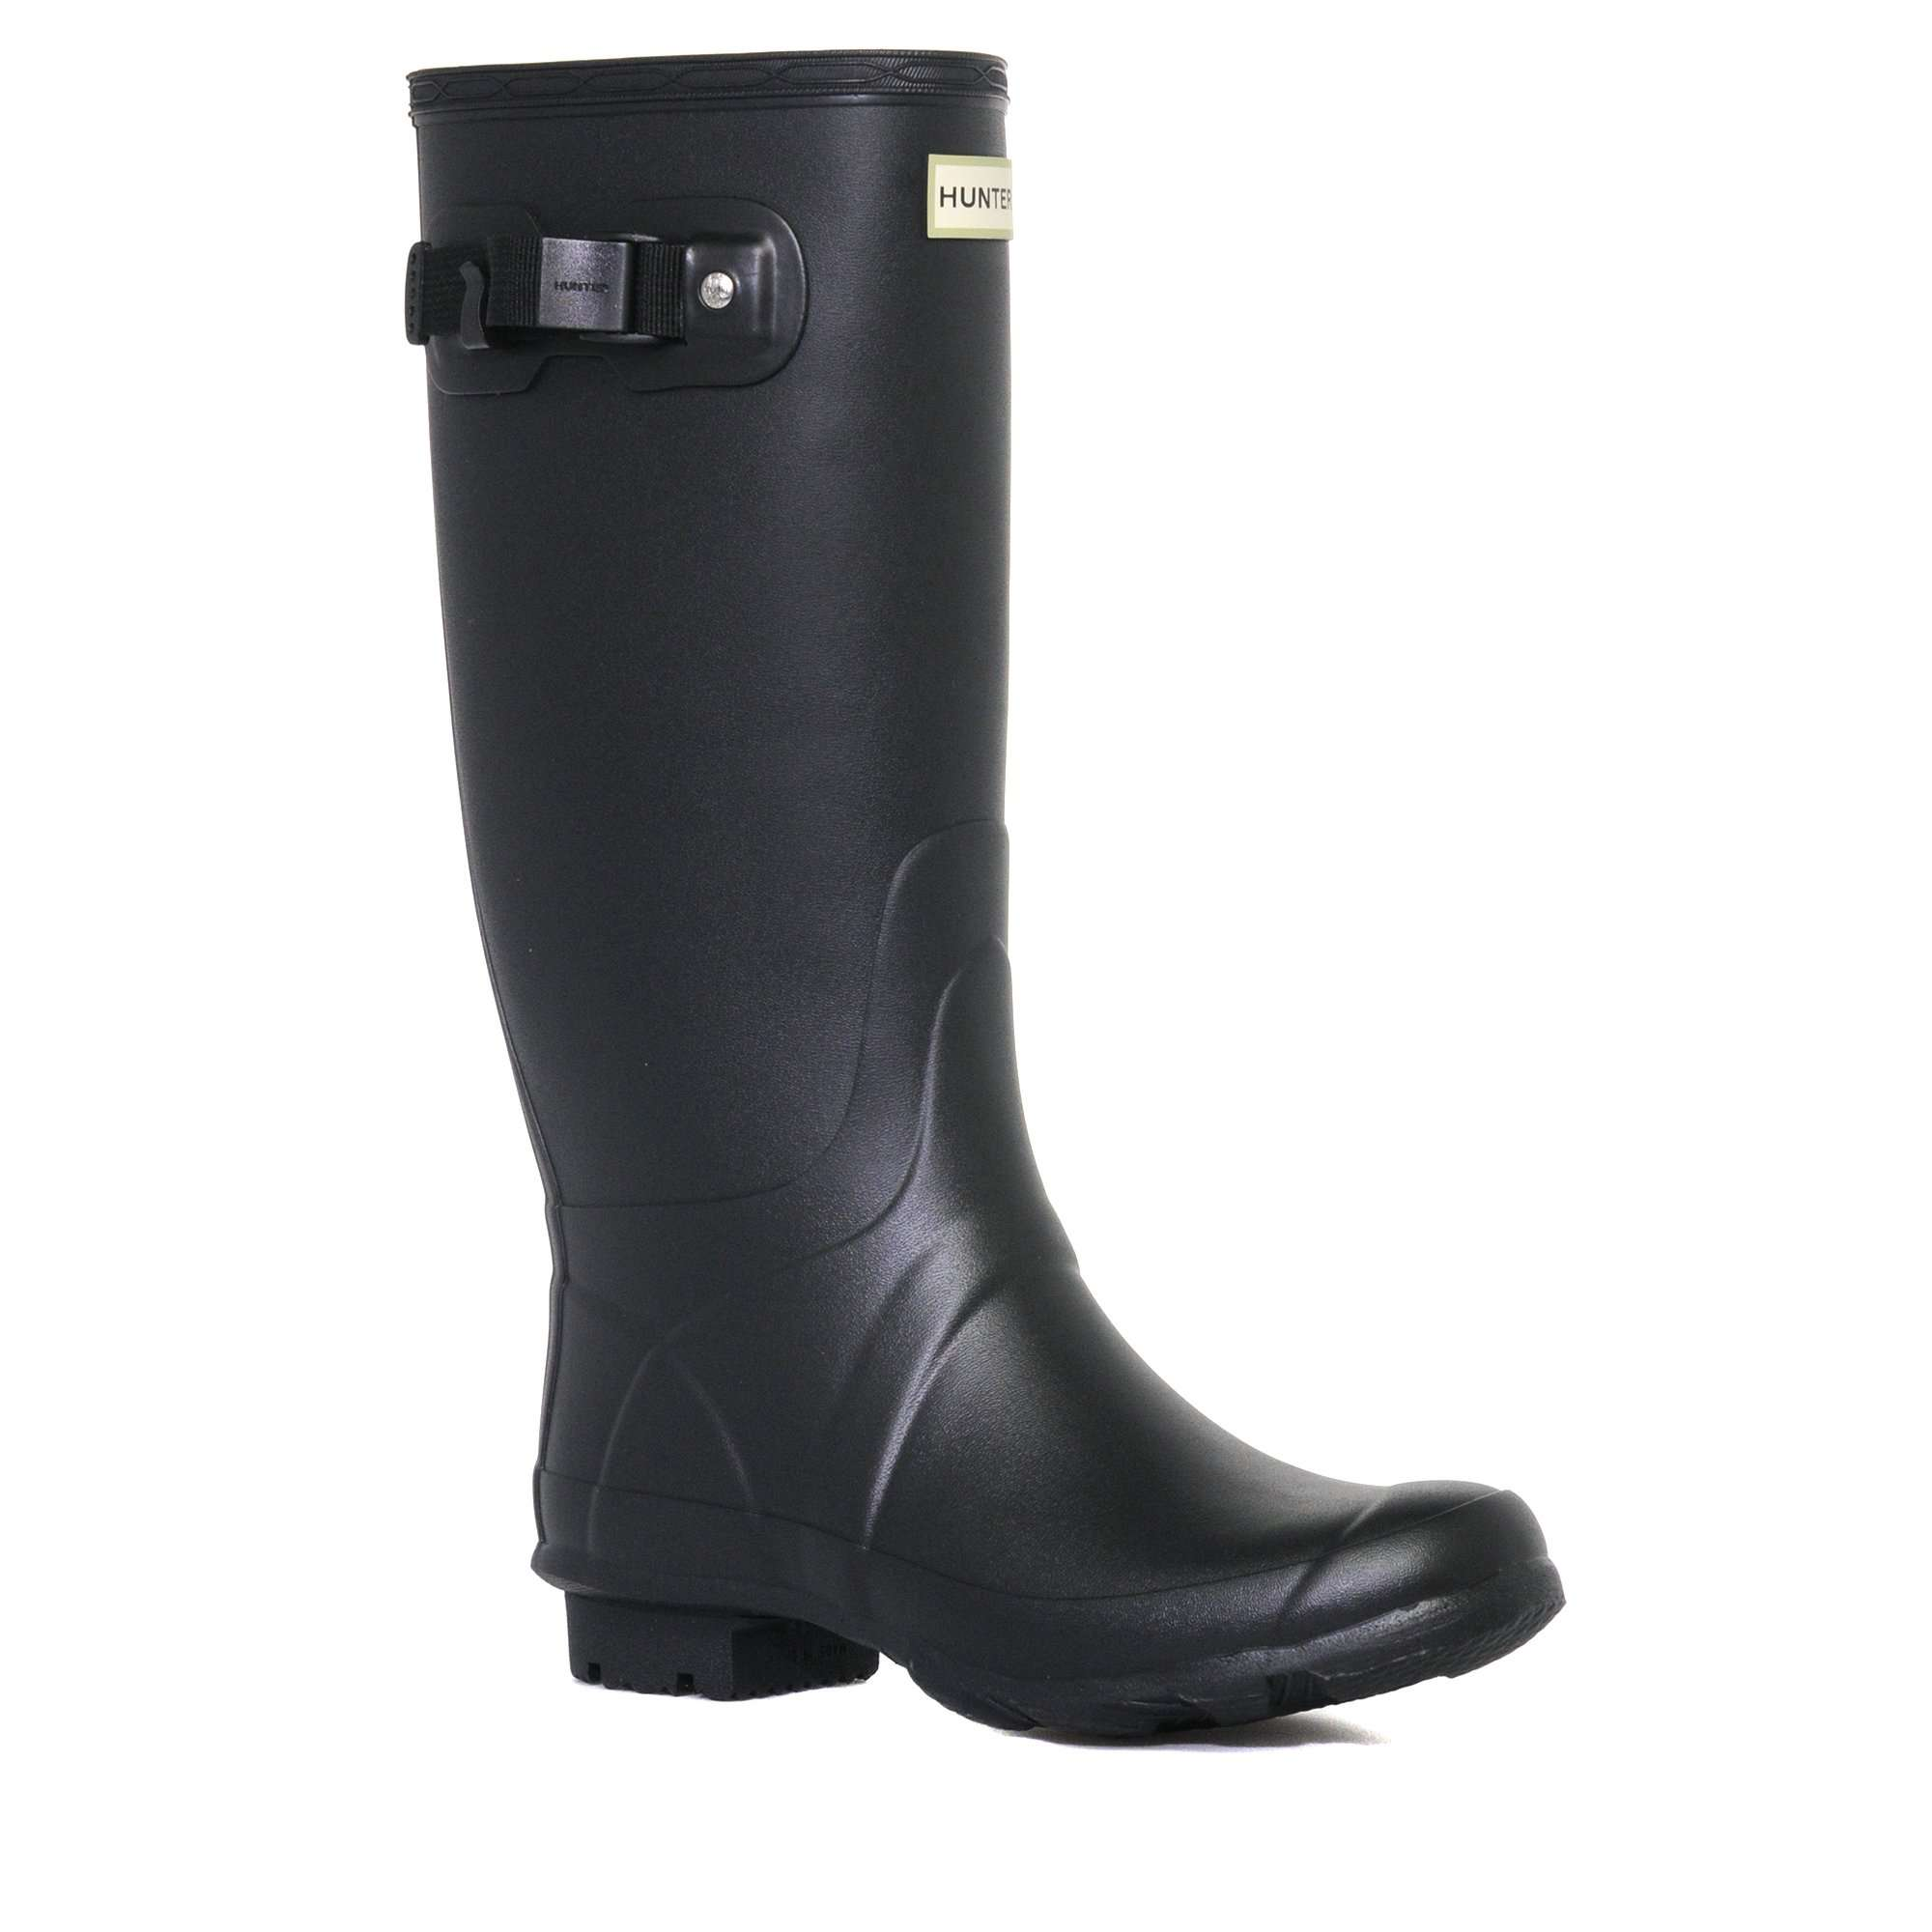 HUNTER Women's Field Huntress Wellington Boot